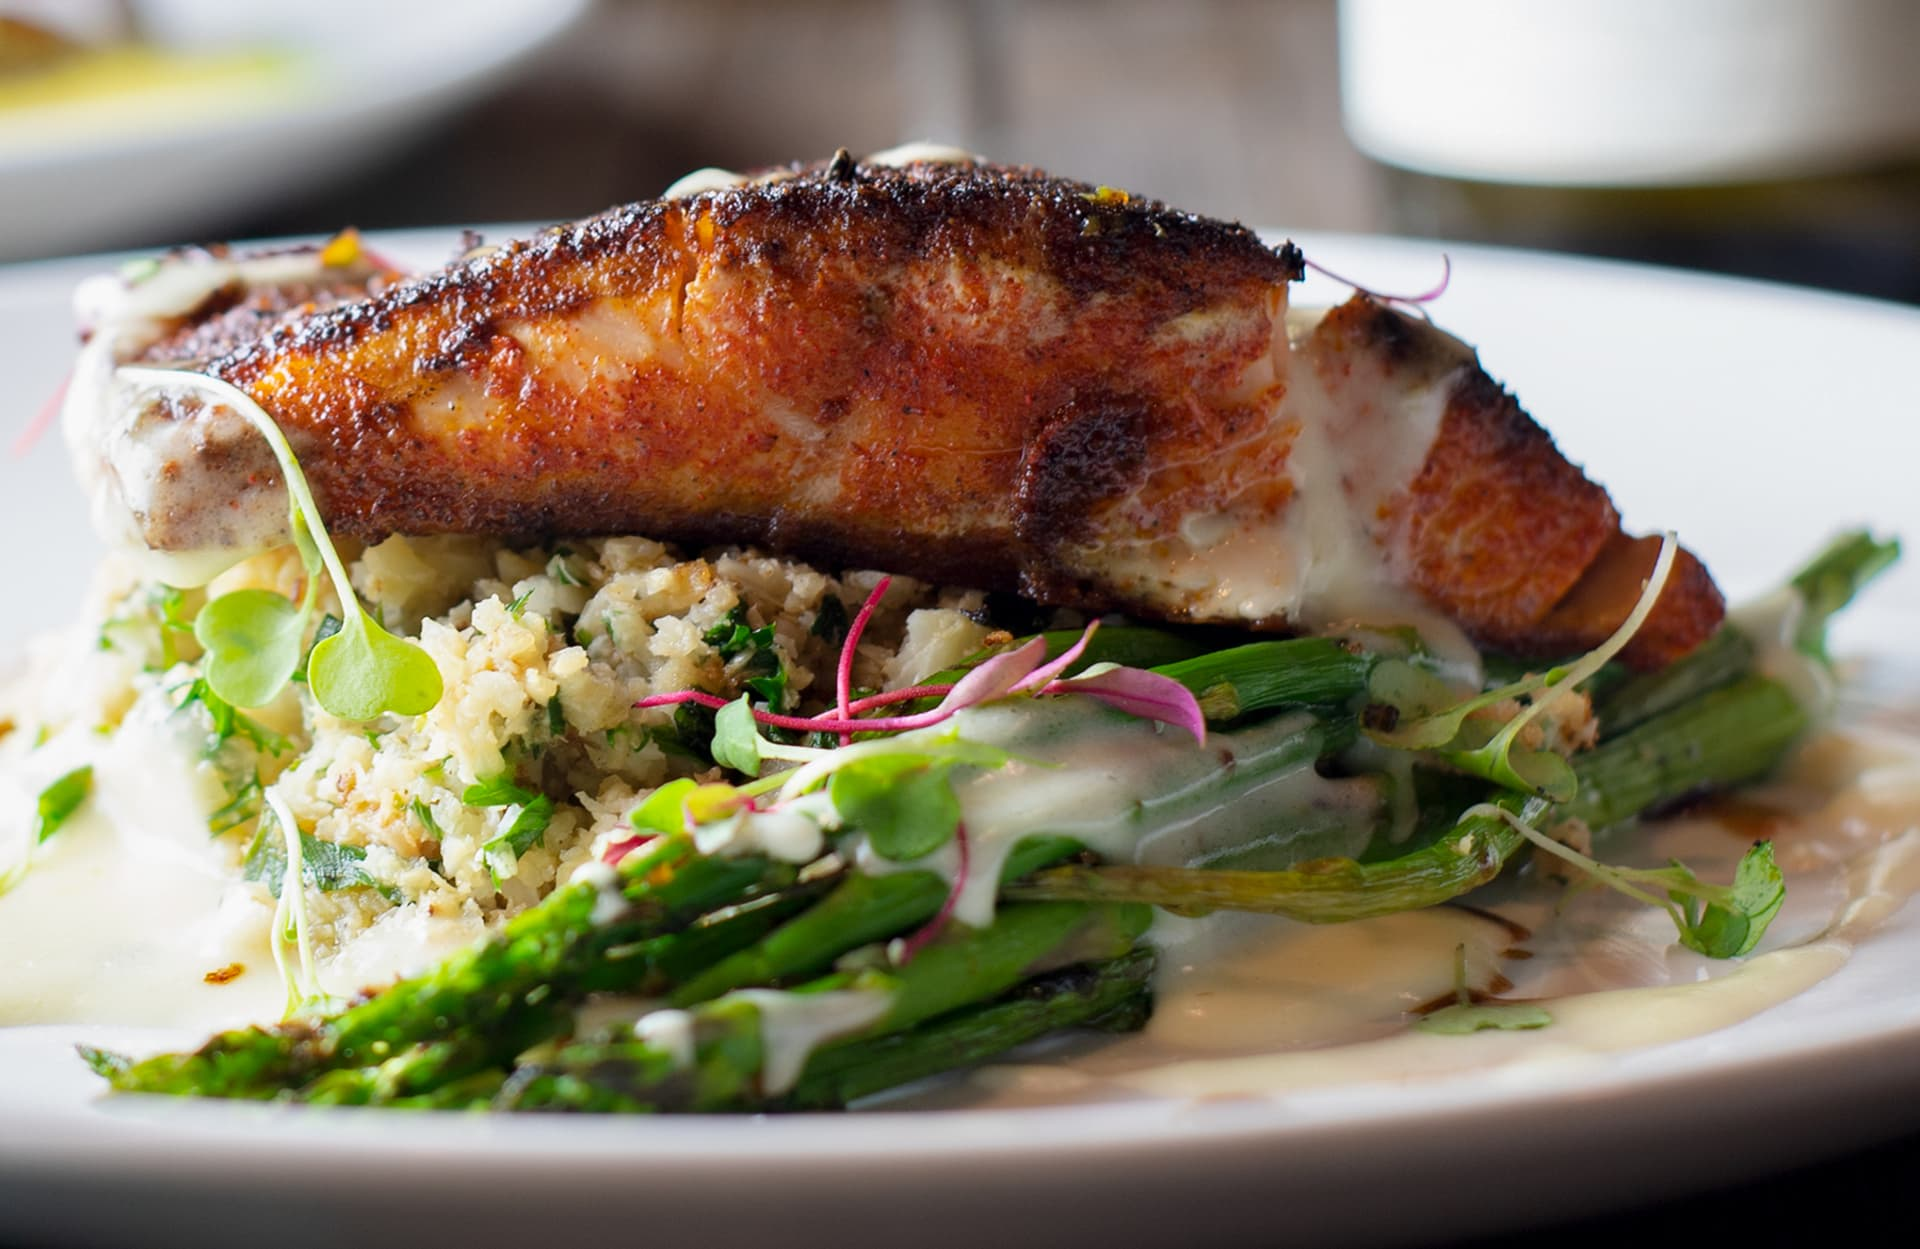 BLACKENED WILD SALMON